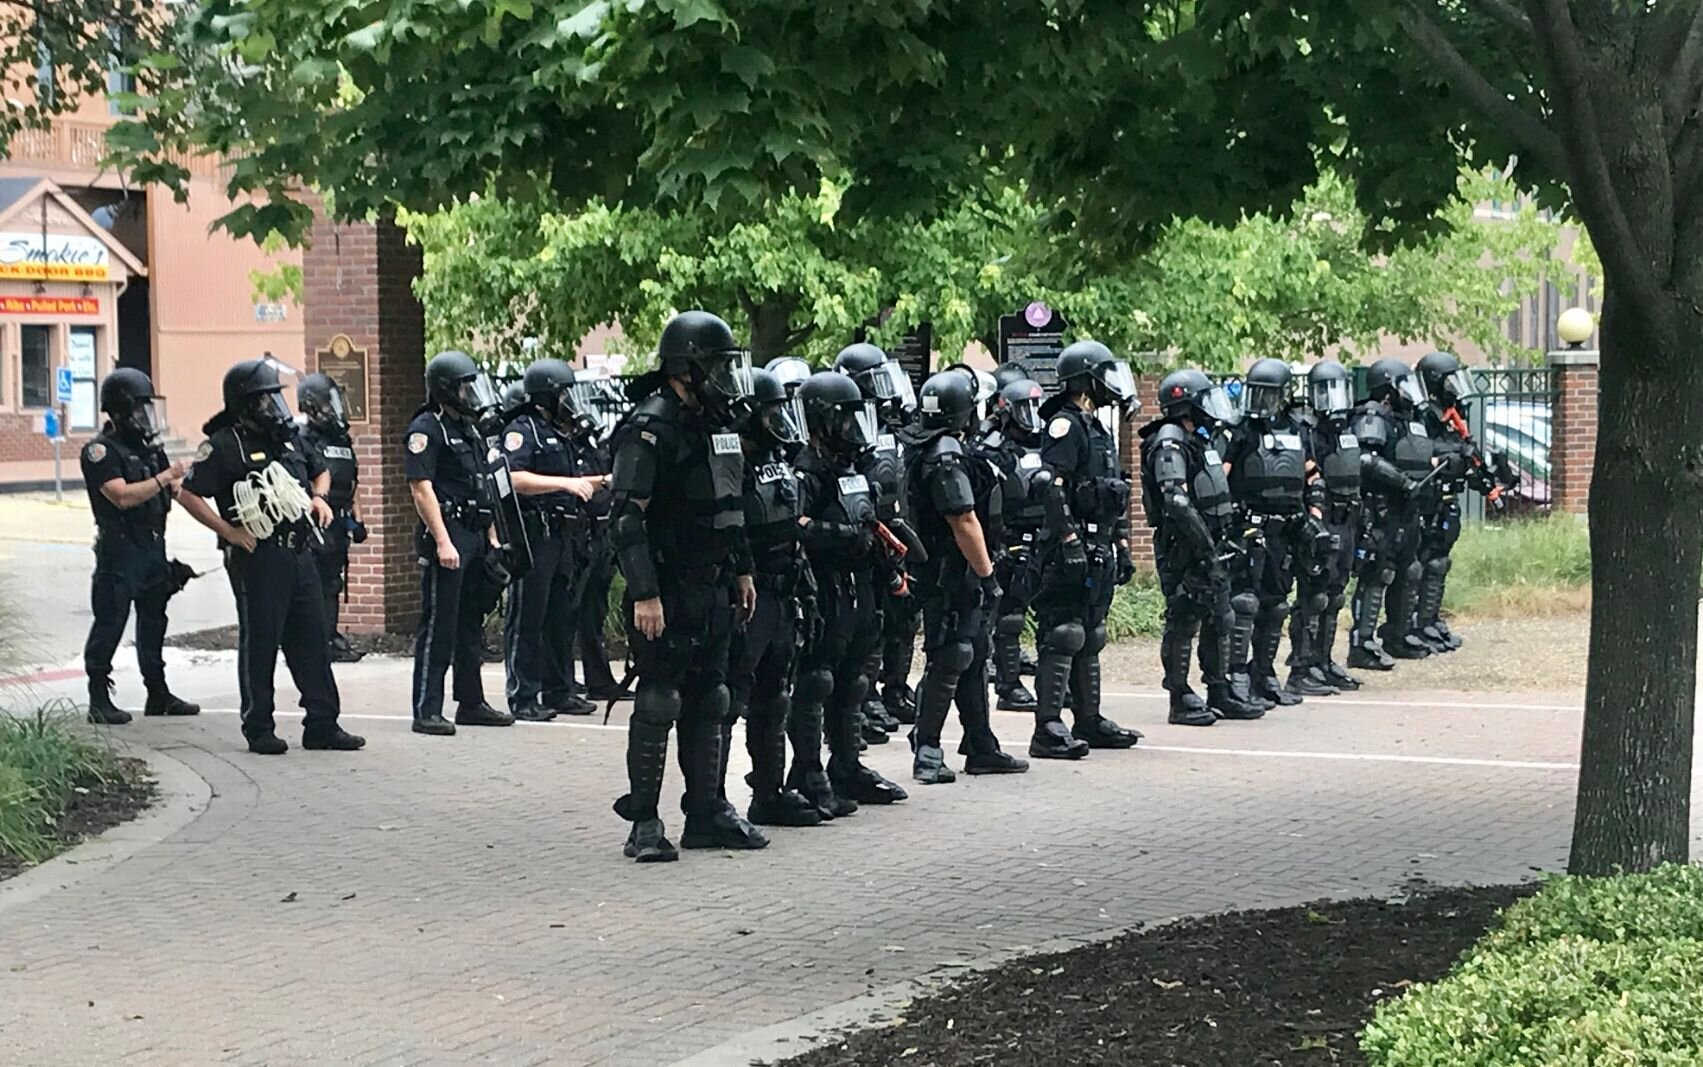 Police in riot gear form a line just inside the east entrance of Arcadia Creek Festival Place. Other officers entered at other points in order to clear the area.